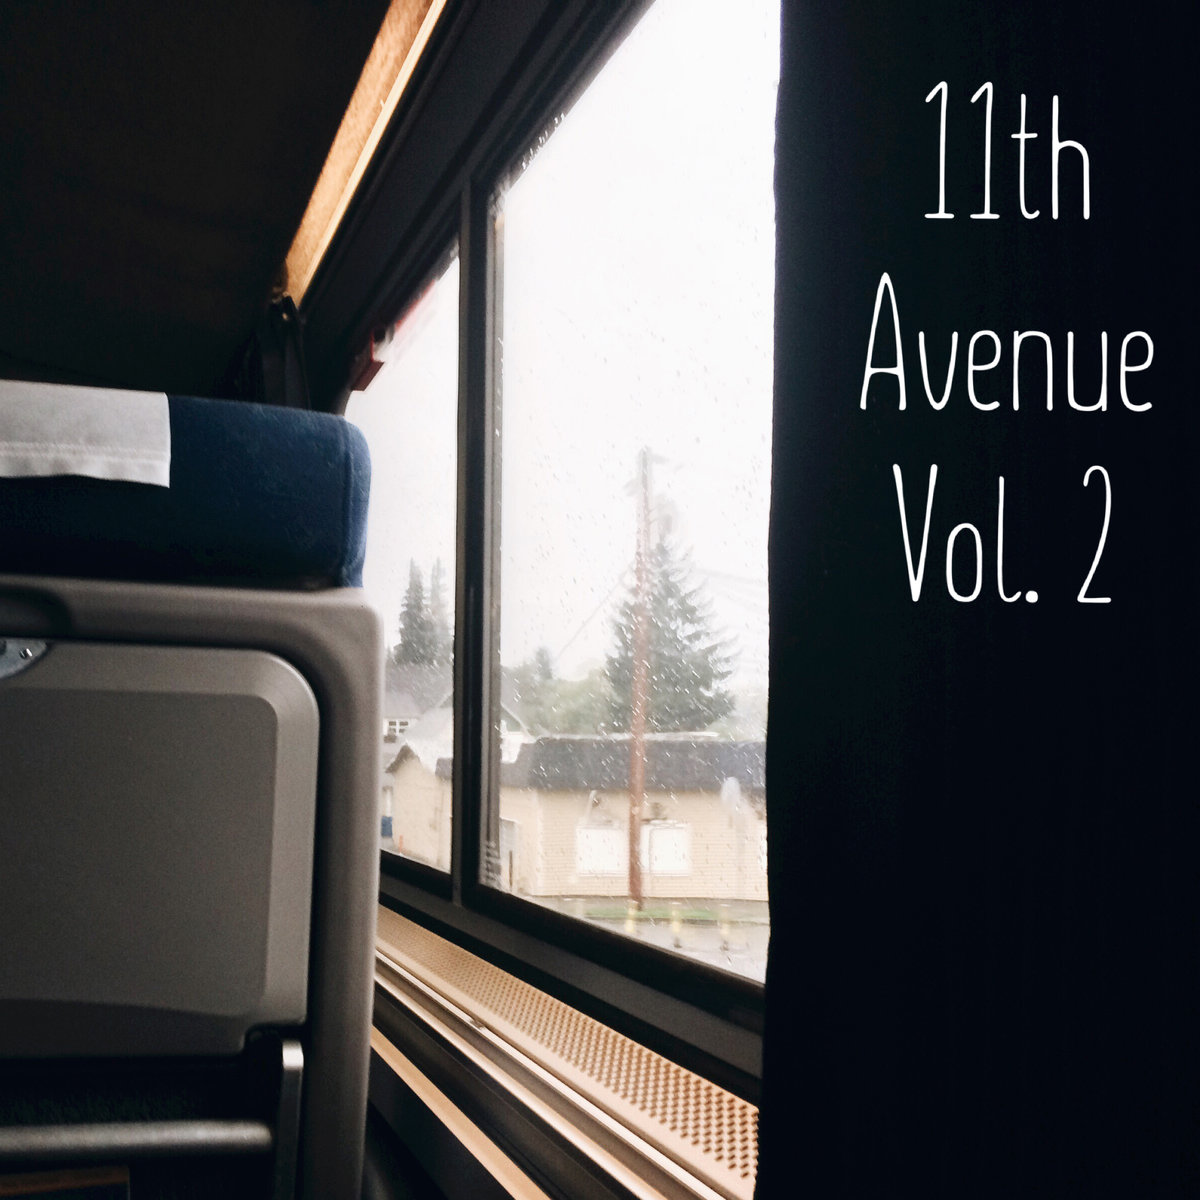 B. Miu - Simple Life @ '11th Avenue Vol. 2' album (11th ave records, 11thaverecords 11th avenue)